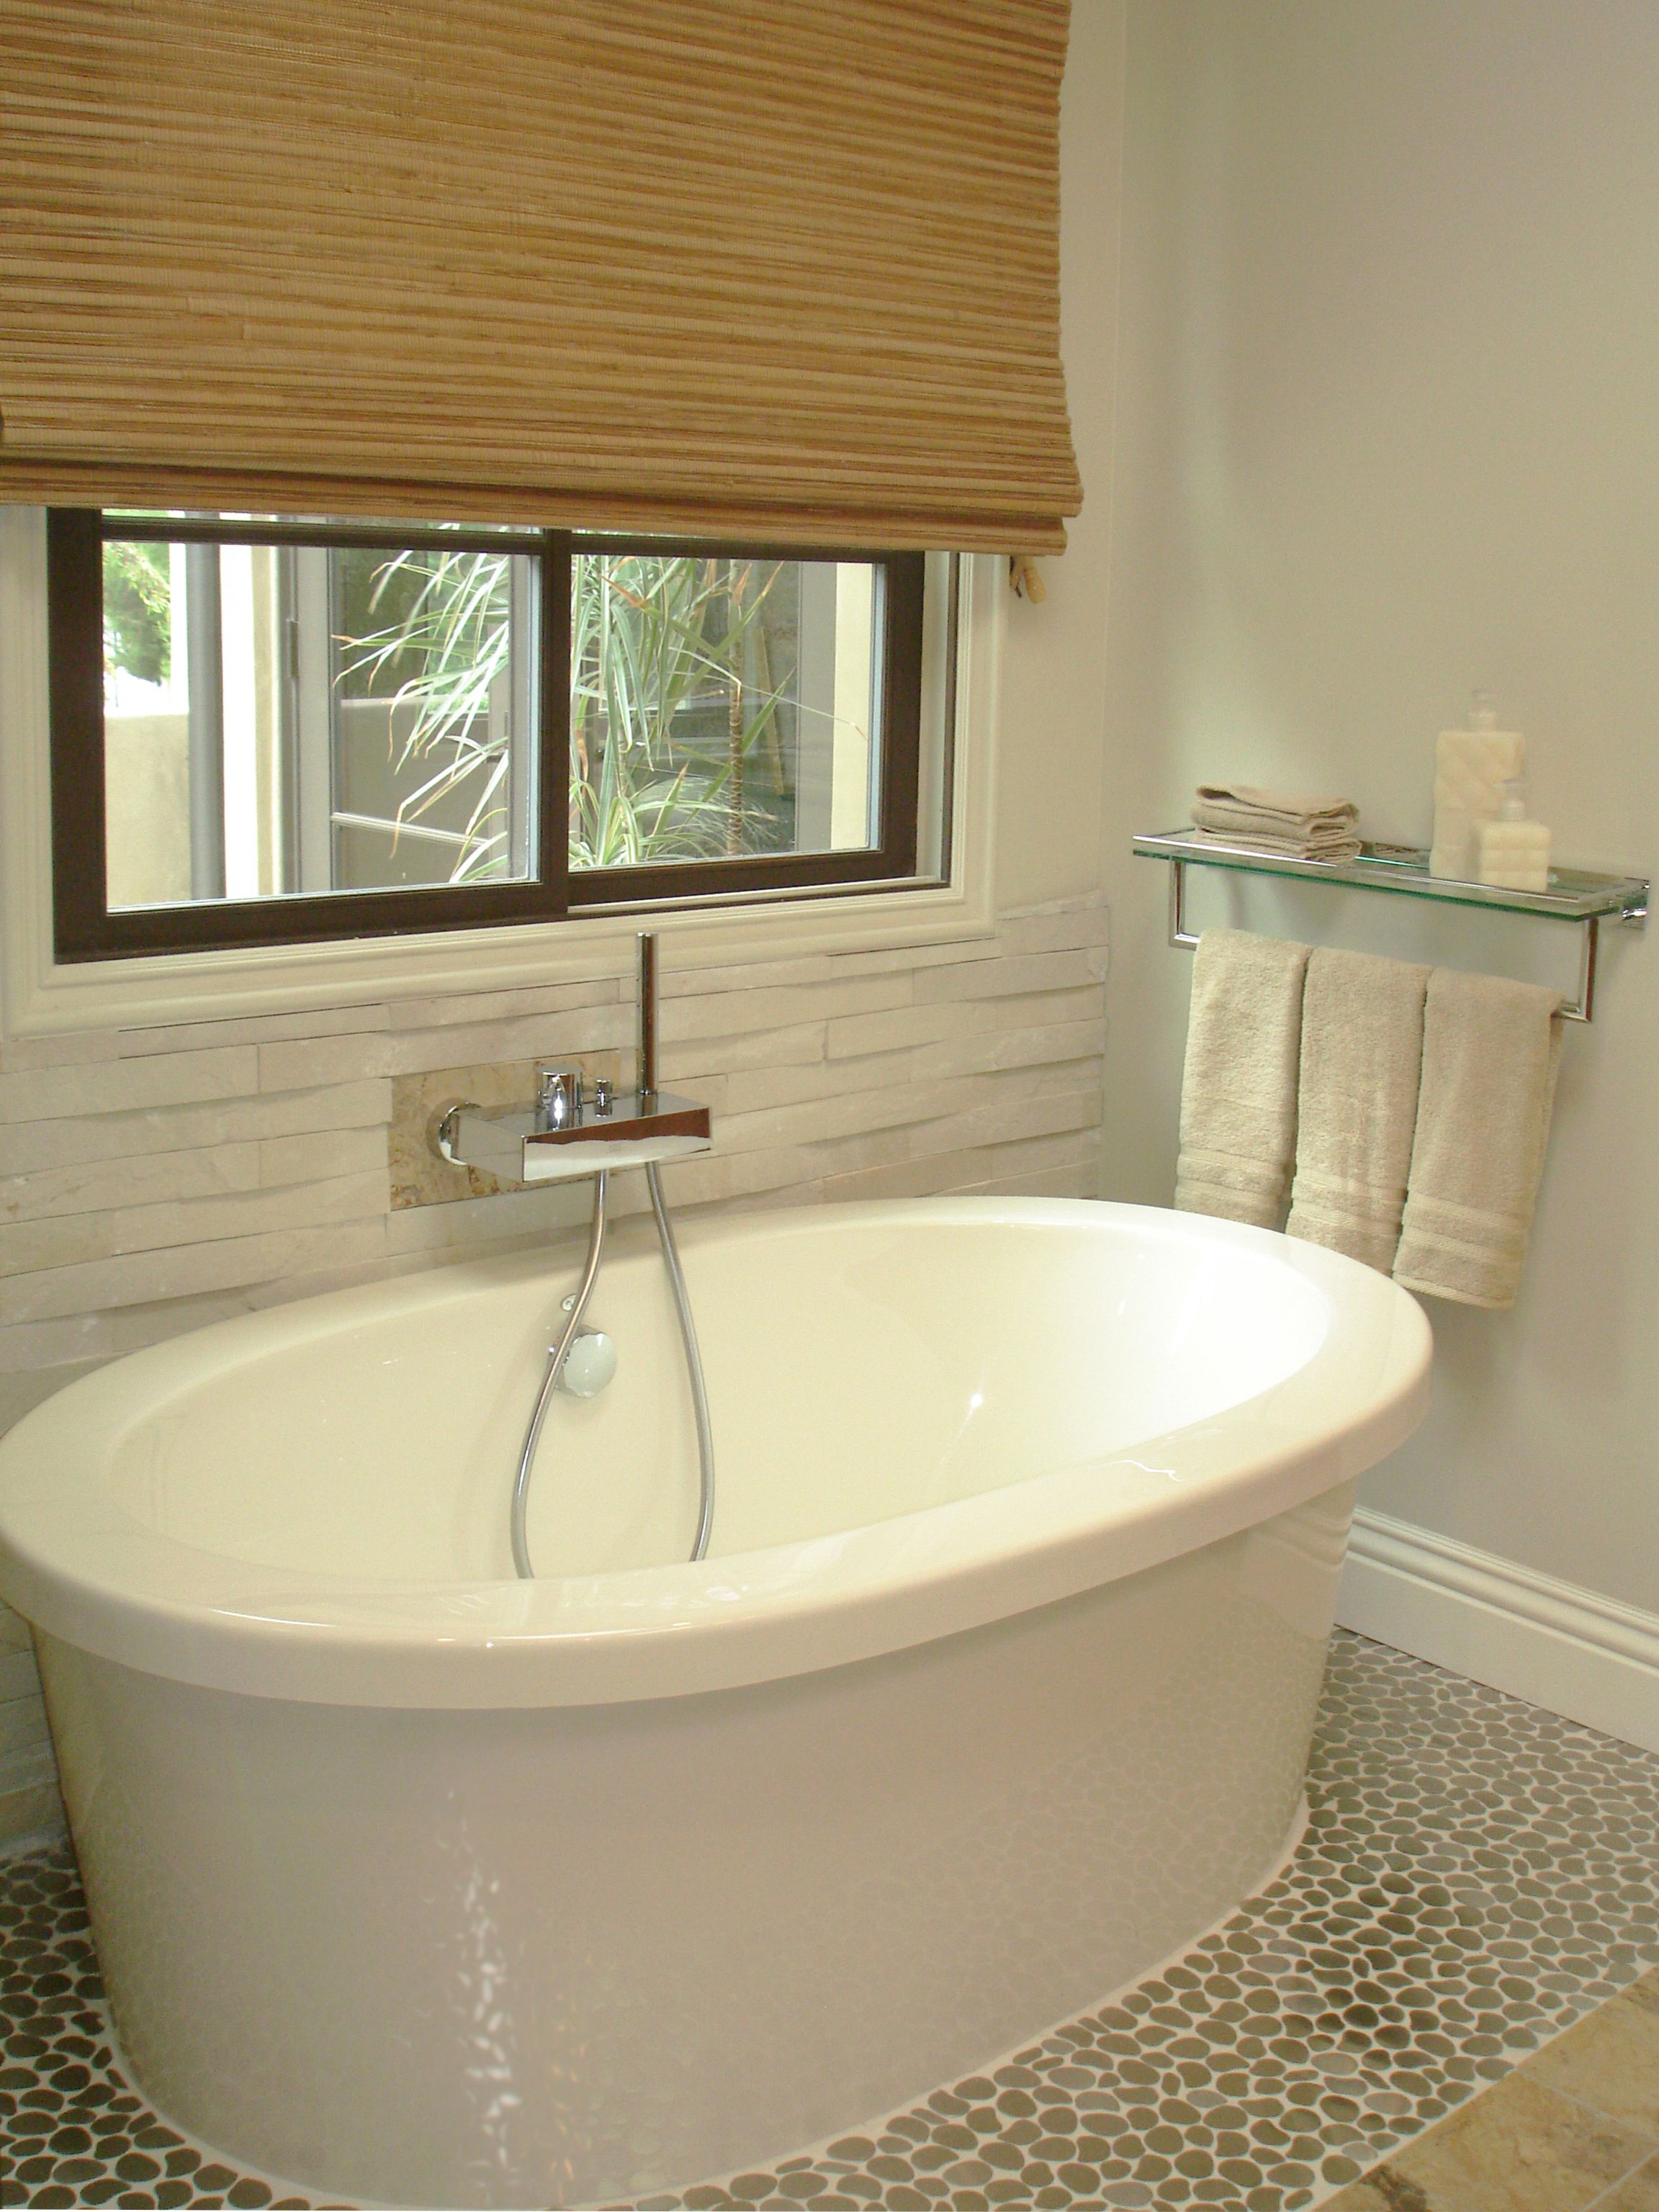 Freestanding custom tub surrounded by natural stacked stone wall ...